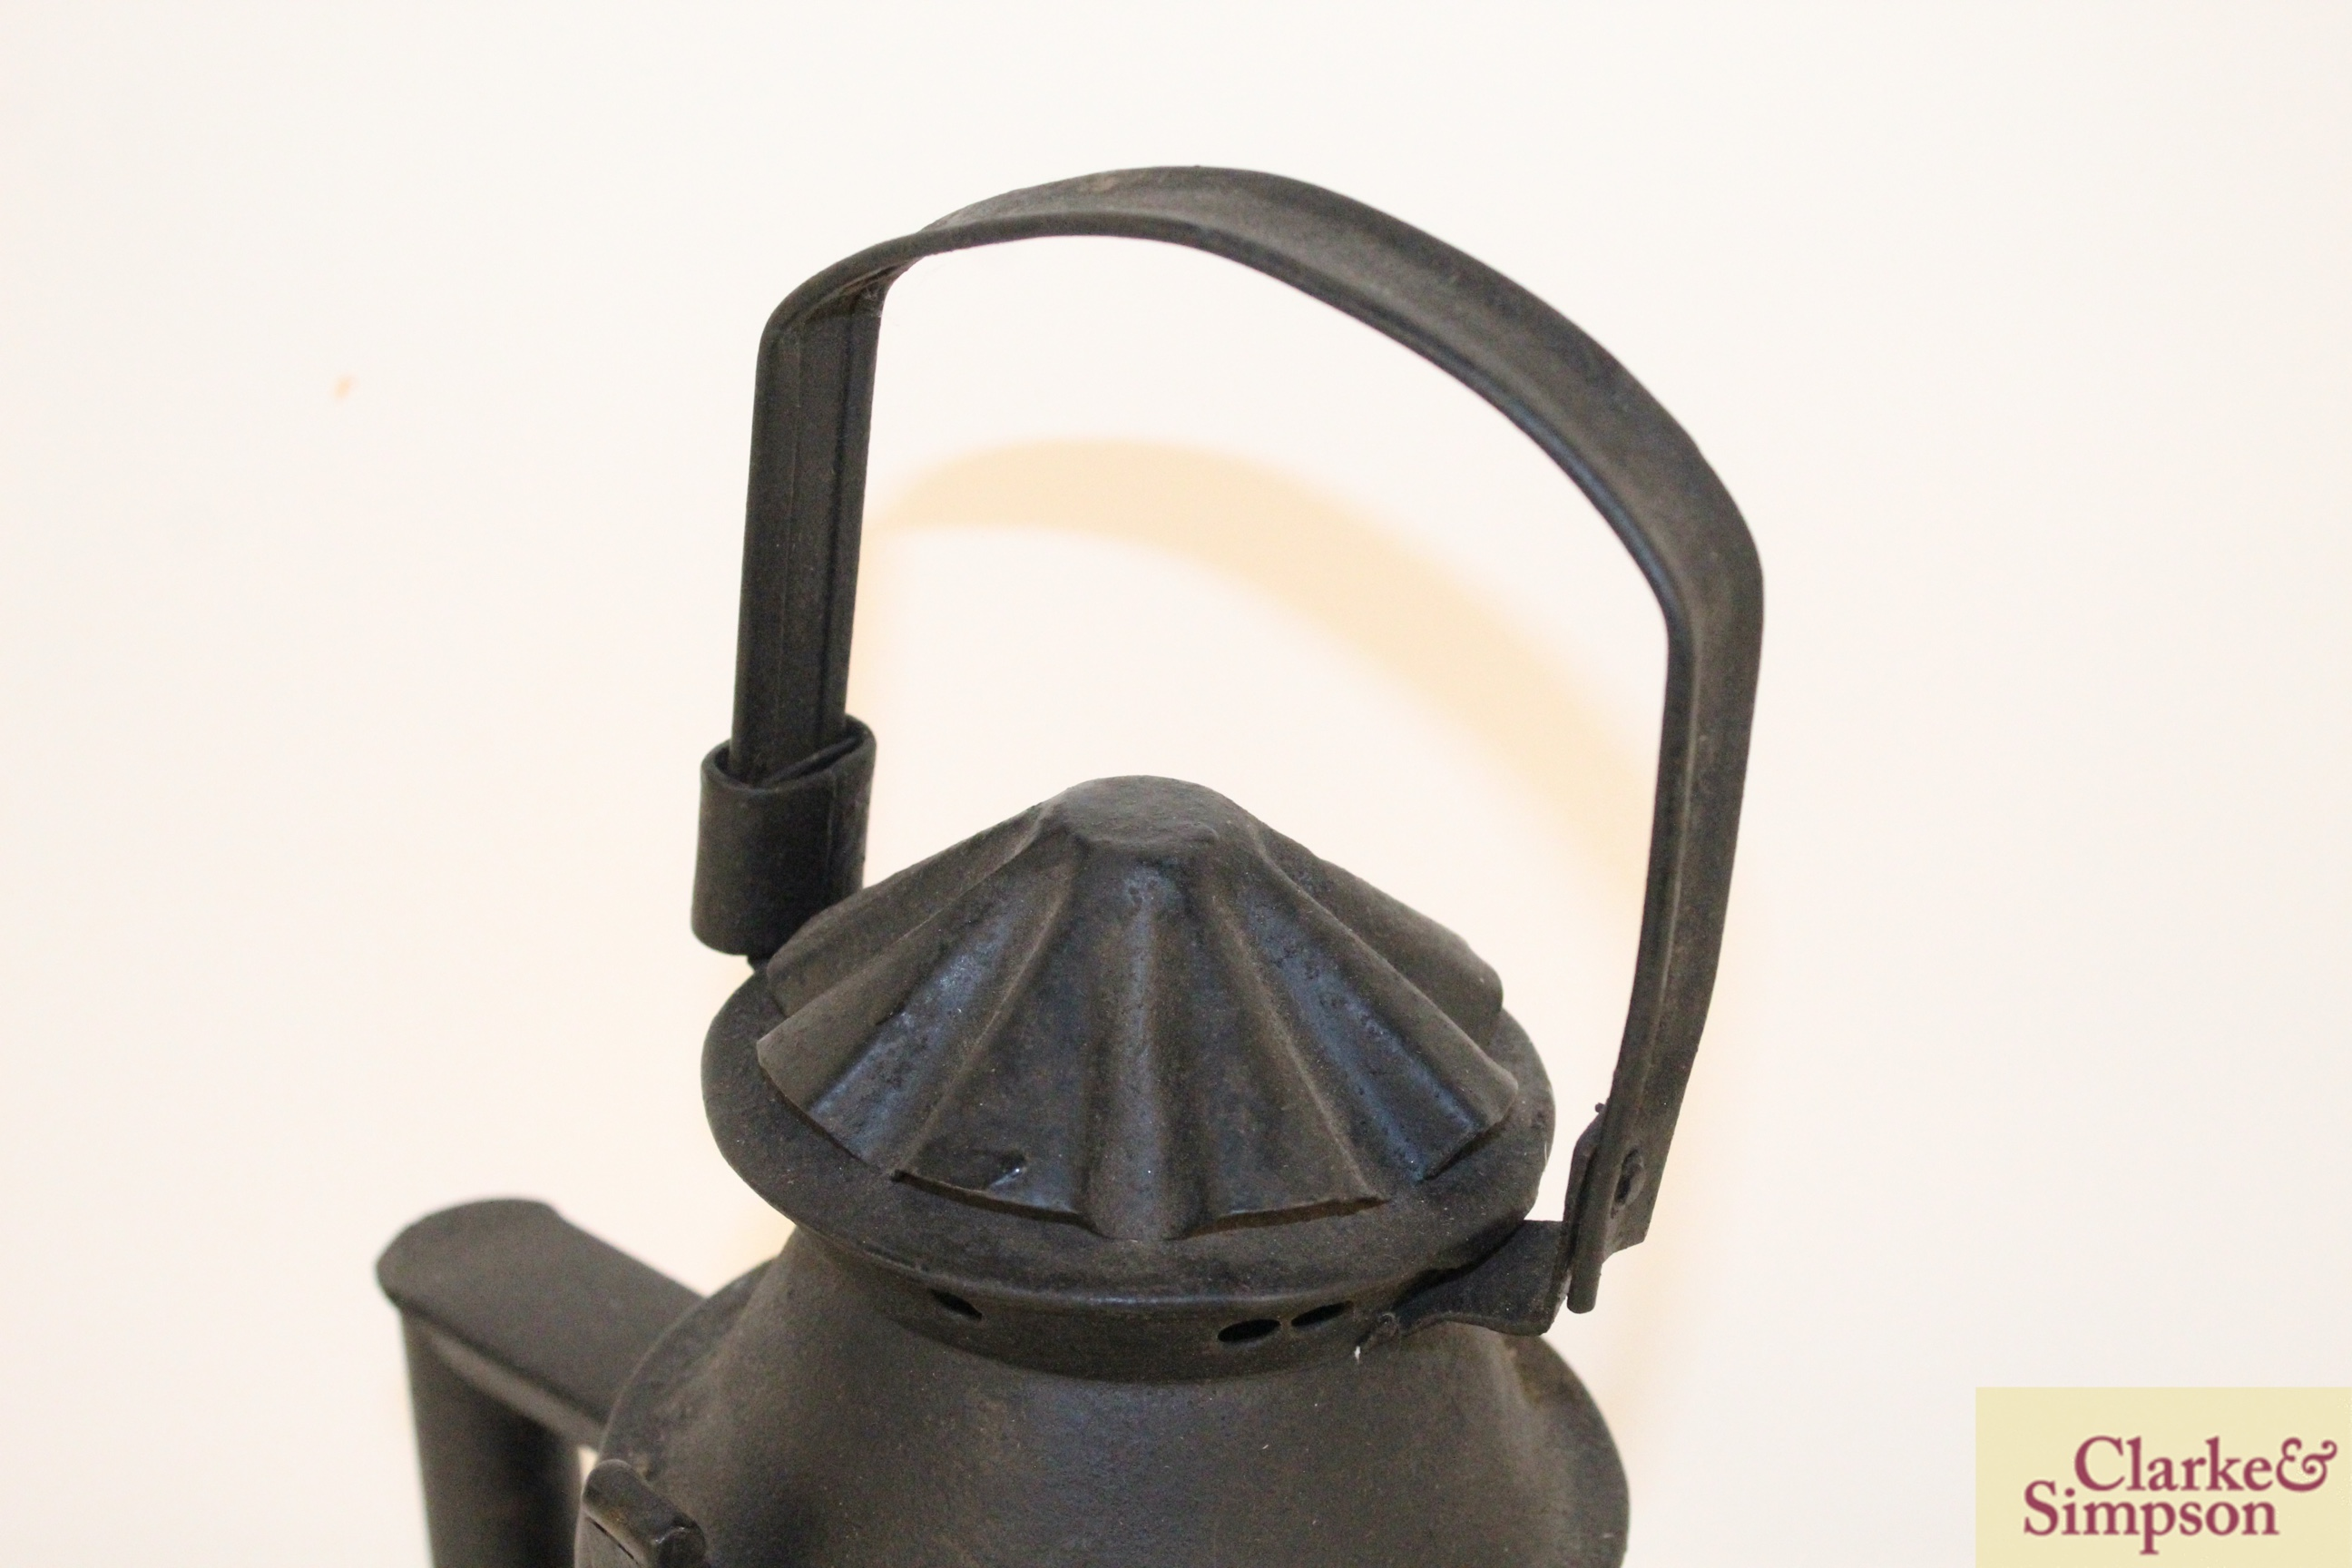 A vintage railway signal lamp - Image 4 of 5